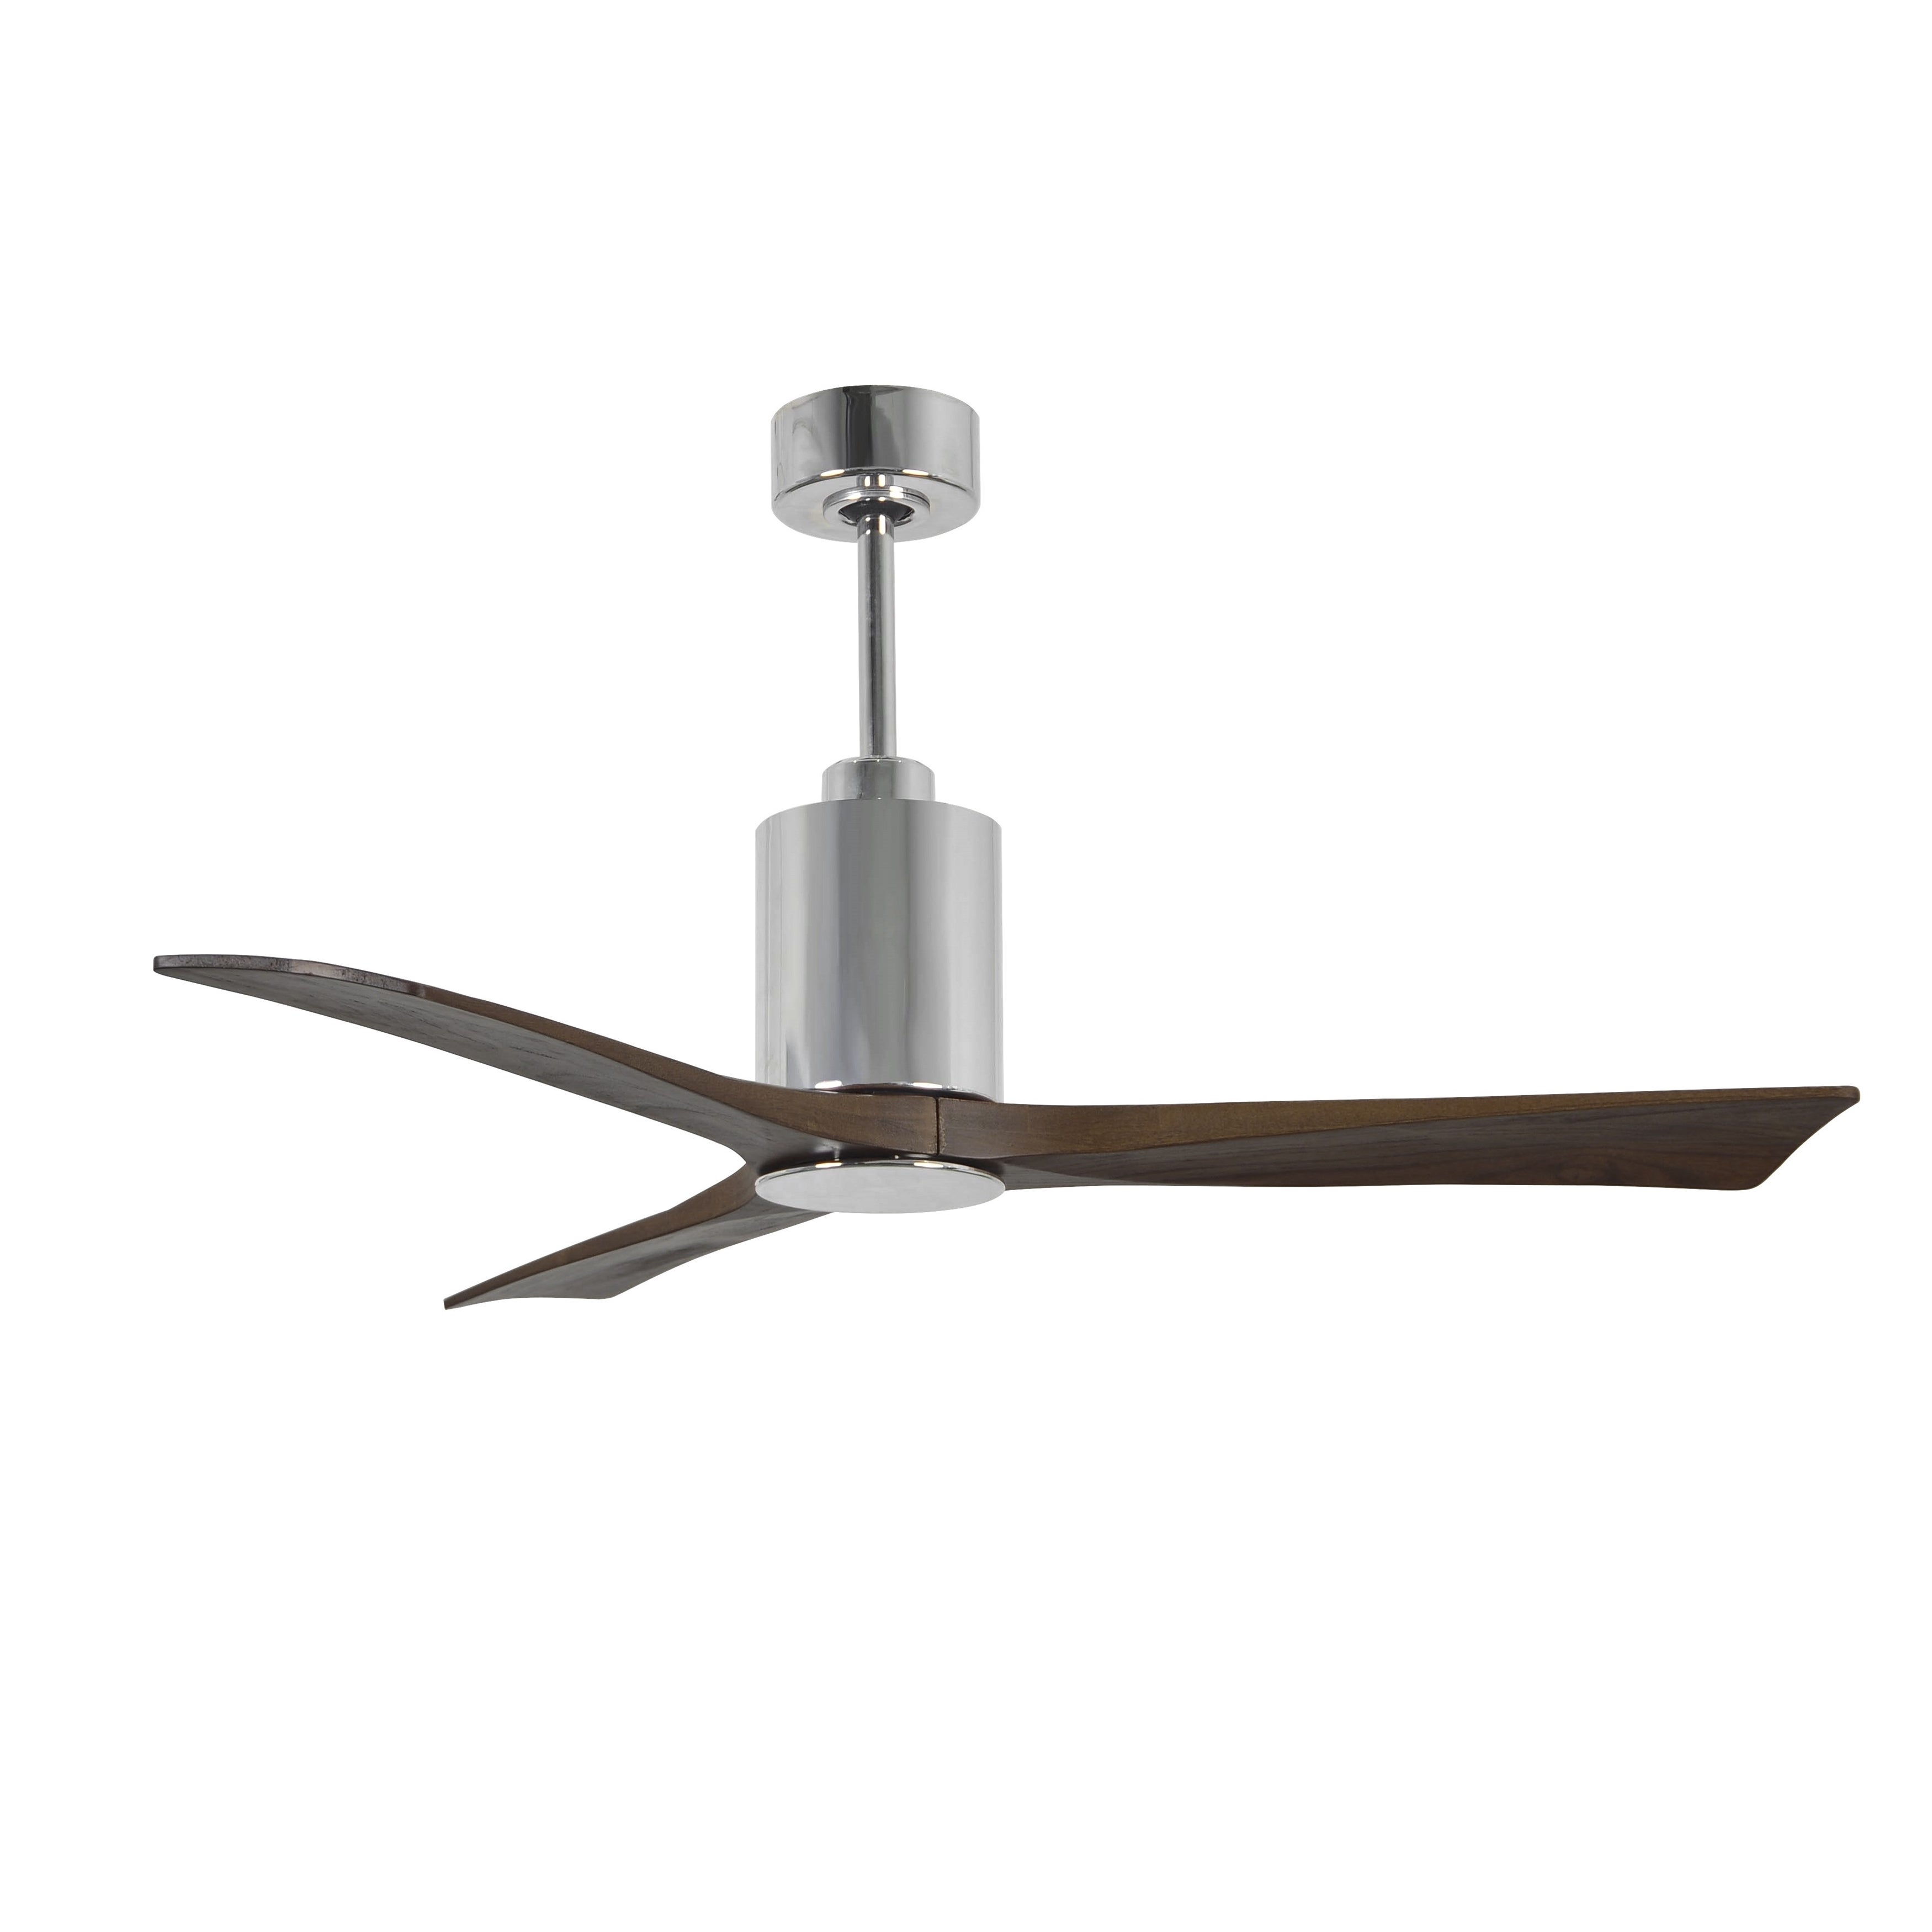 Matthews Fan pany Patricia Polished Chrome 60 inch 3 blade